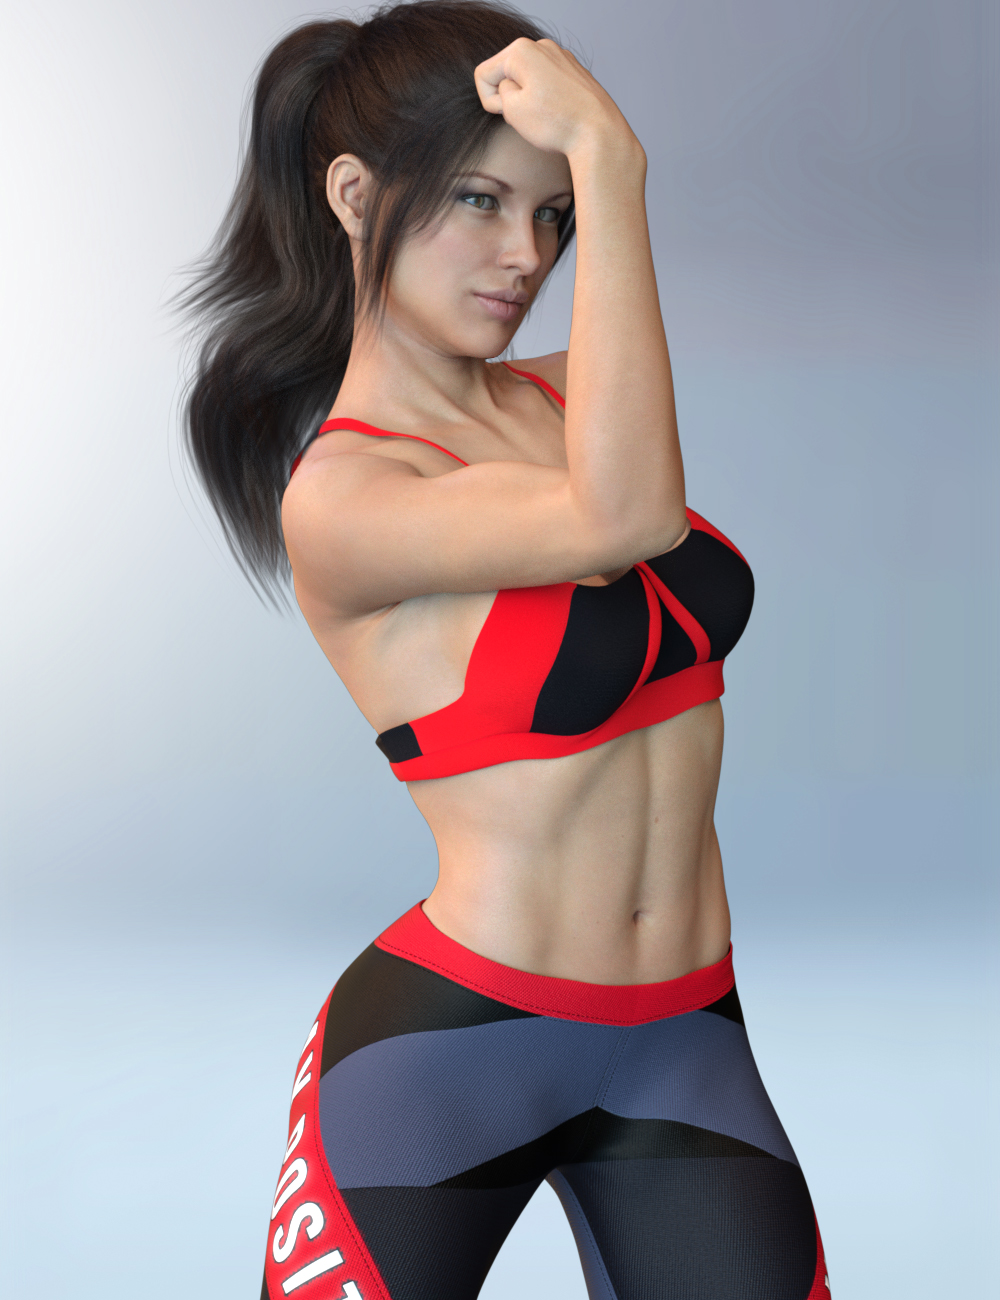 X-Fashion Activewear 02 Outfit for Genesis 8 Female(s) by: xtrart-3d, 3D Models by Daz 3D